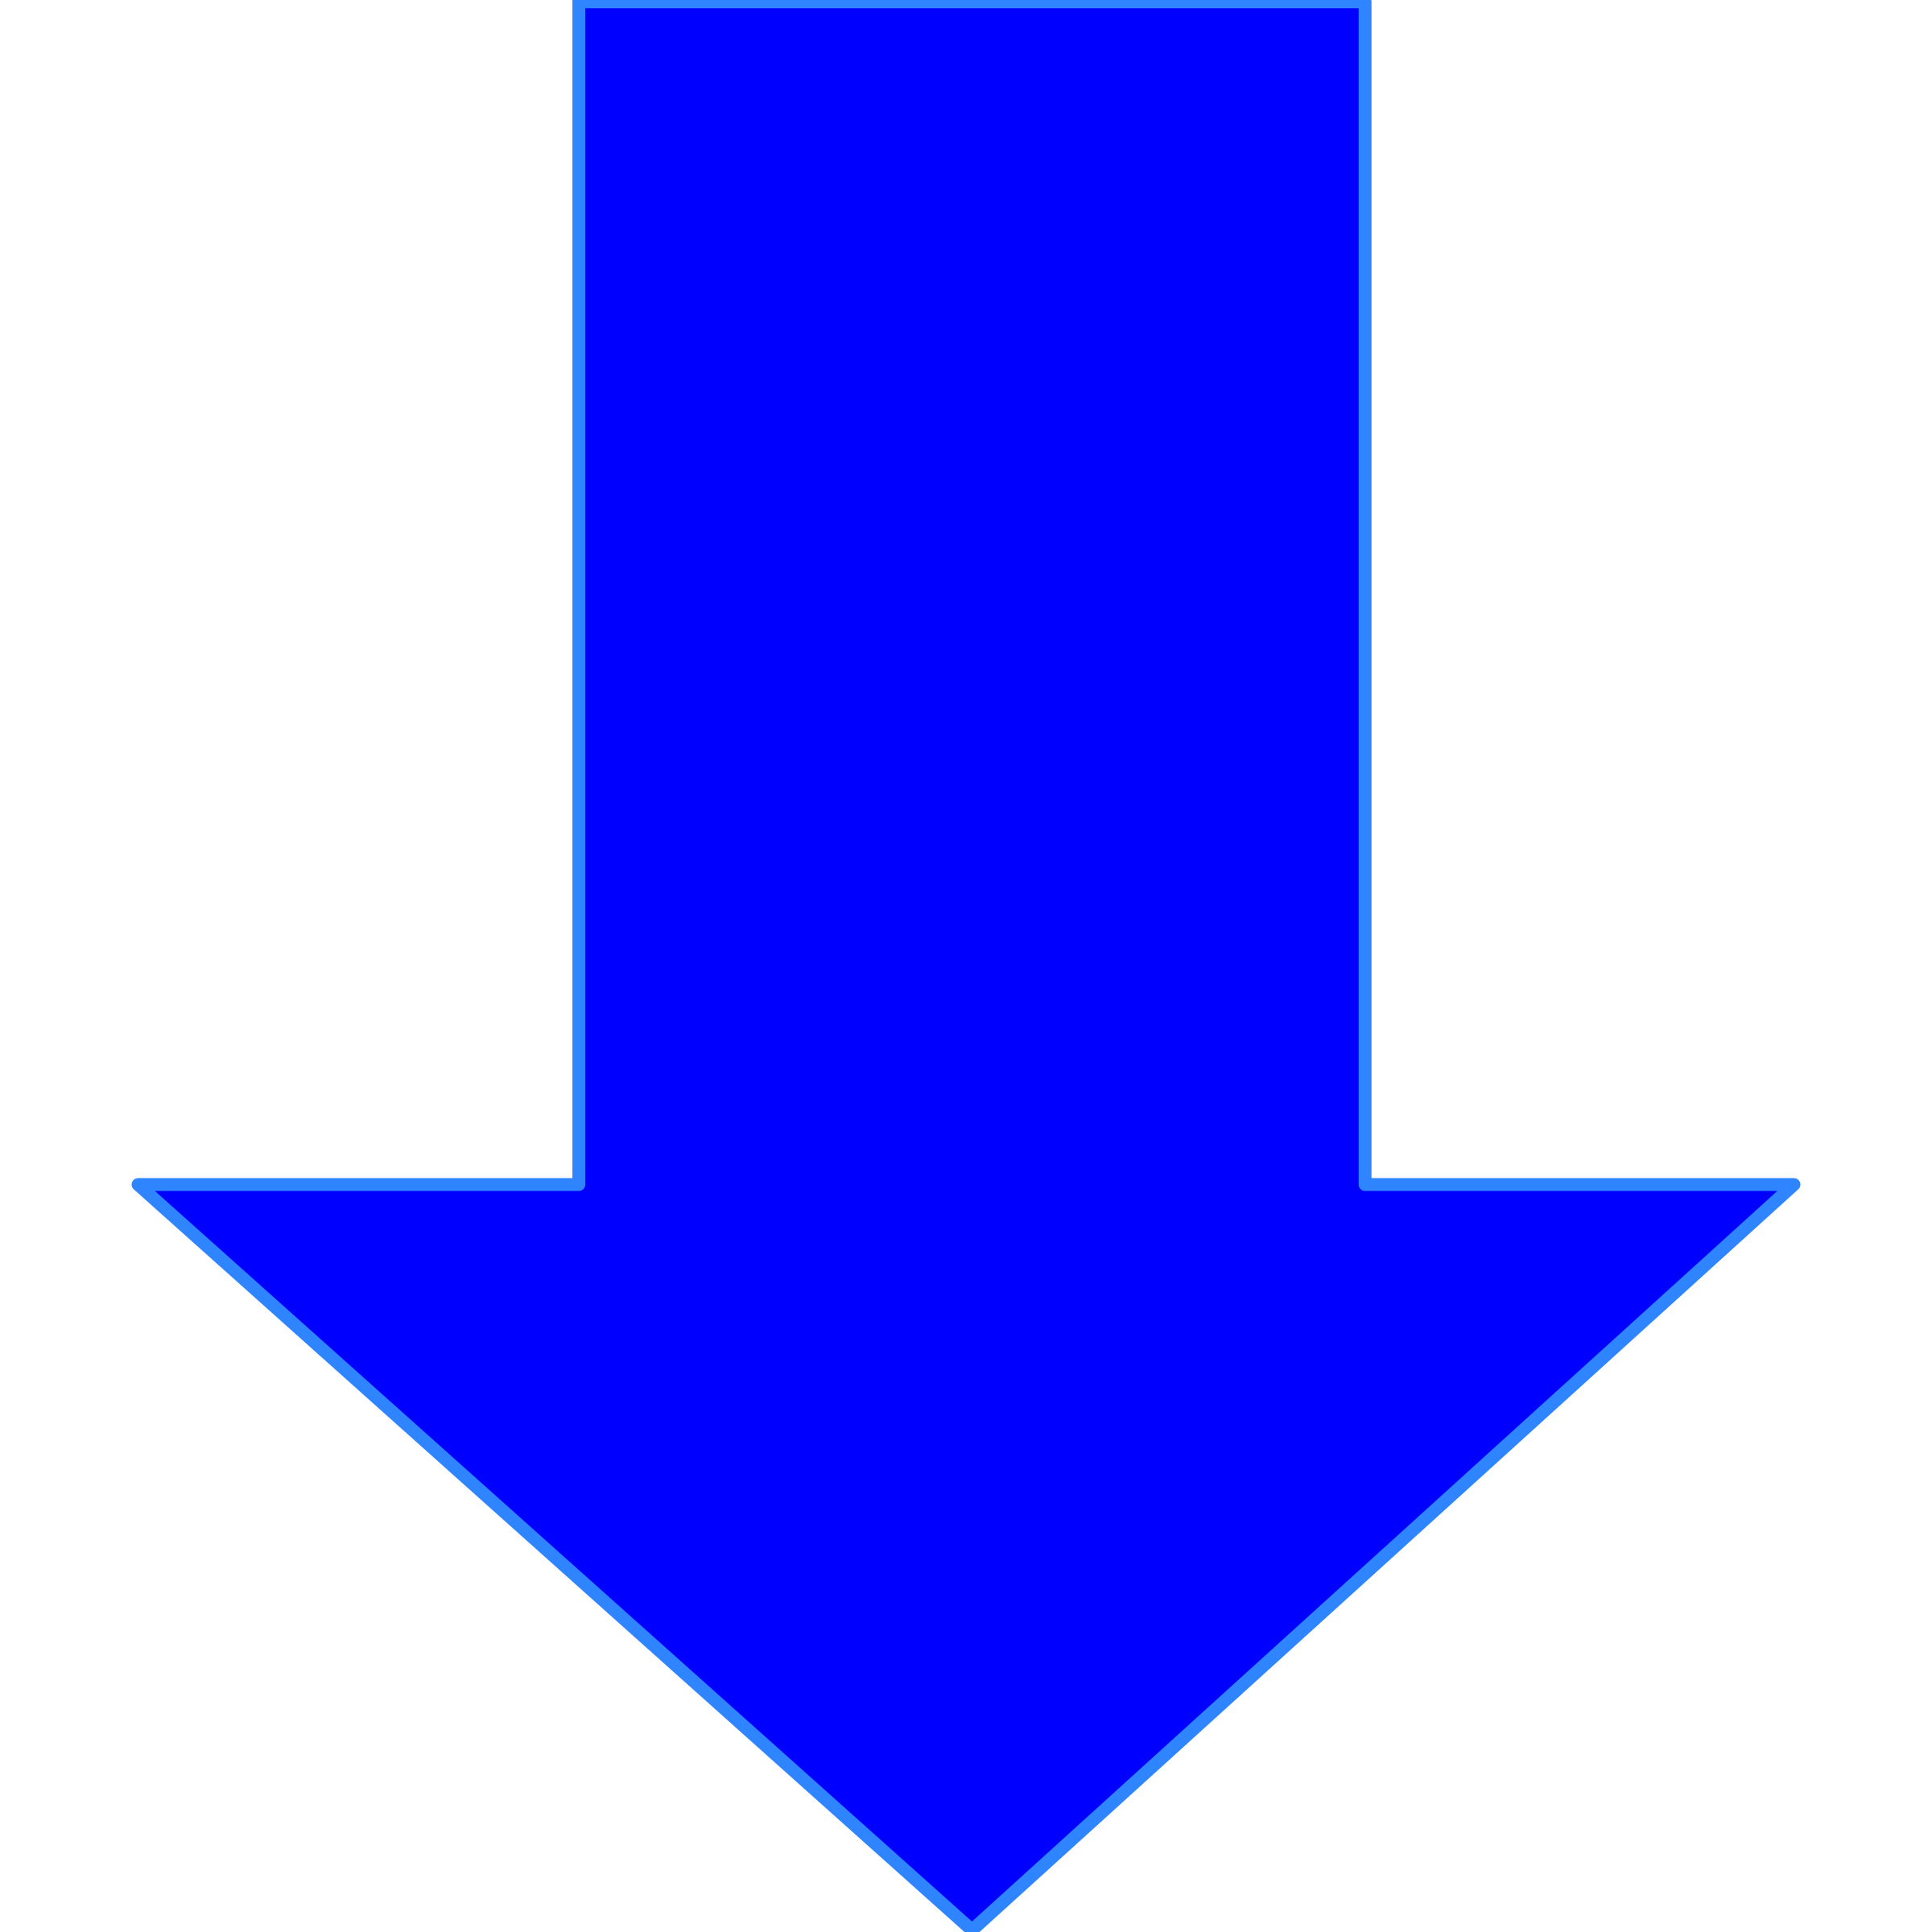 Clipart - Arrow in blue svg library